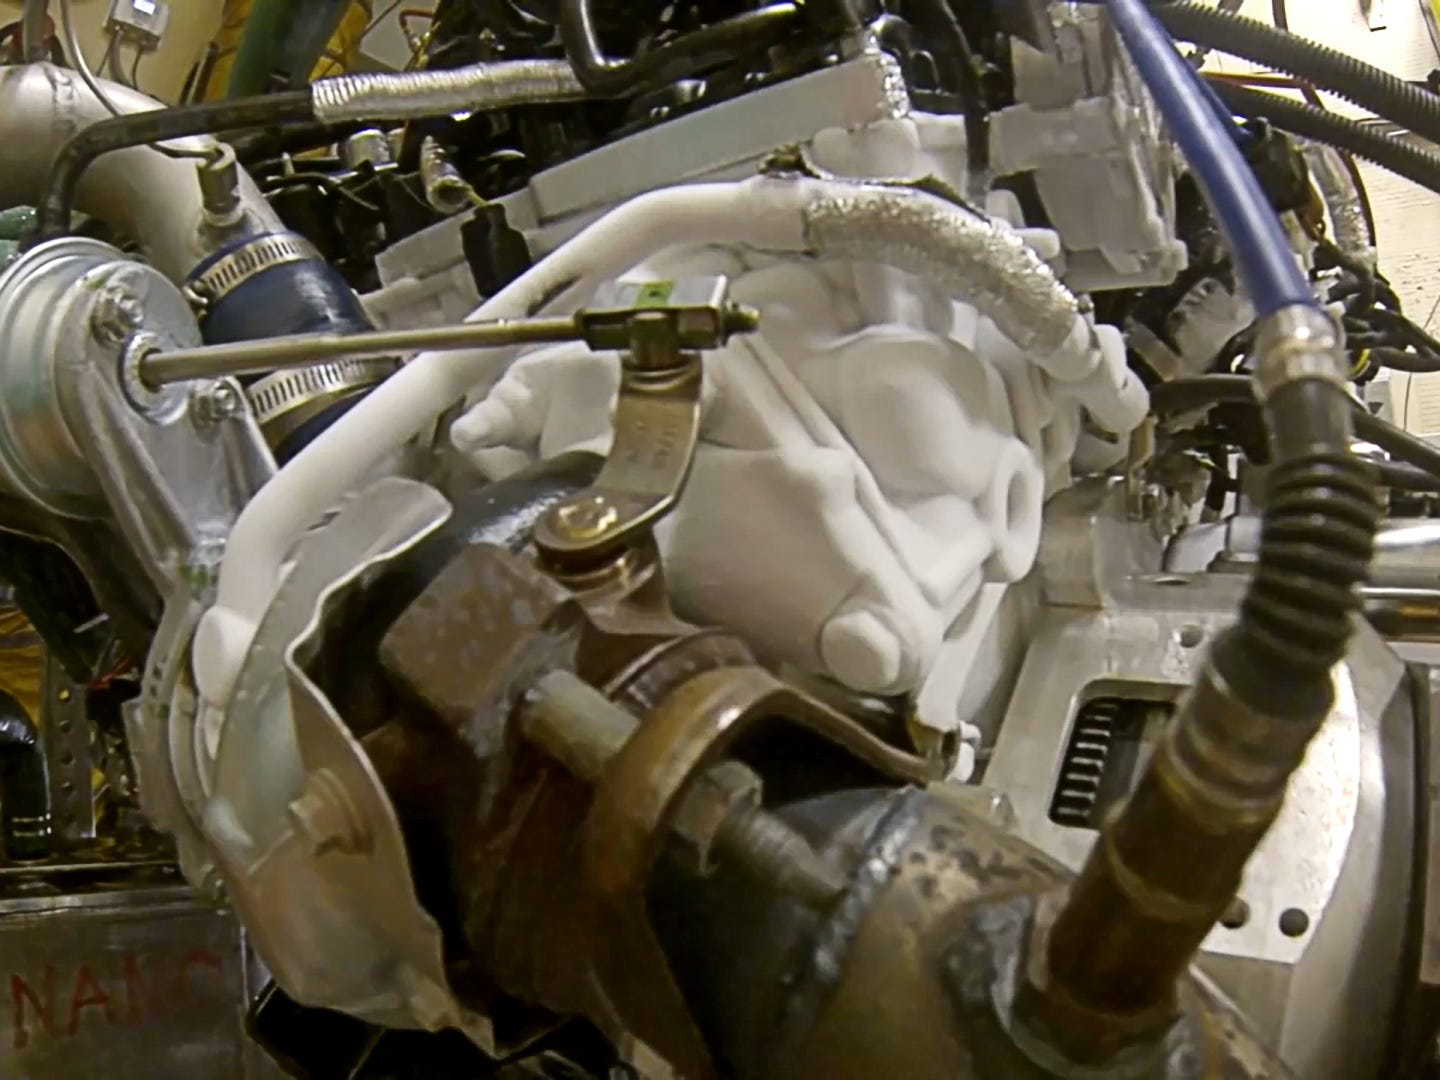 F-150 engines are first placed in a special cell and hooked to equipment, called a dynamometer, which simulates pulling a heavy trailer at full throttle up a steep grade. Next, thermal shock testing takes engines from the coldest polar vortex to extreme heat in just seconds. The engine coolant and oil are quick-cooled to minus 20 degrees in as little as 20 seconds, then the engine runs at maximum power while coolant and oil temperatures stabilize, first at 230 degrees and then at 270 degrees, before being chilled again. This process is run 350 times over more than 400 hours to prove the durability of the engine block, seals, gaskets, cylinder heads and liners.